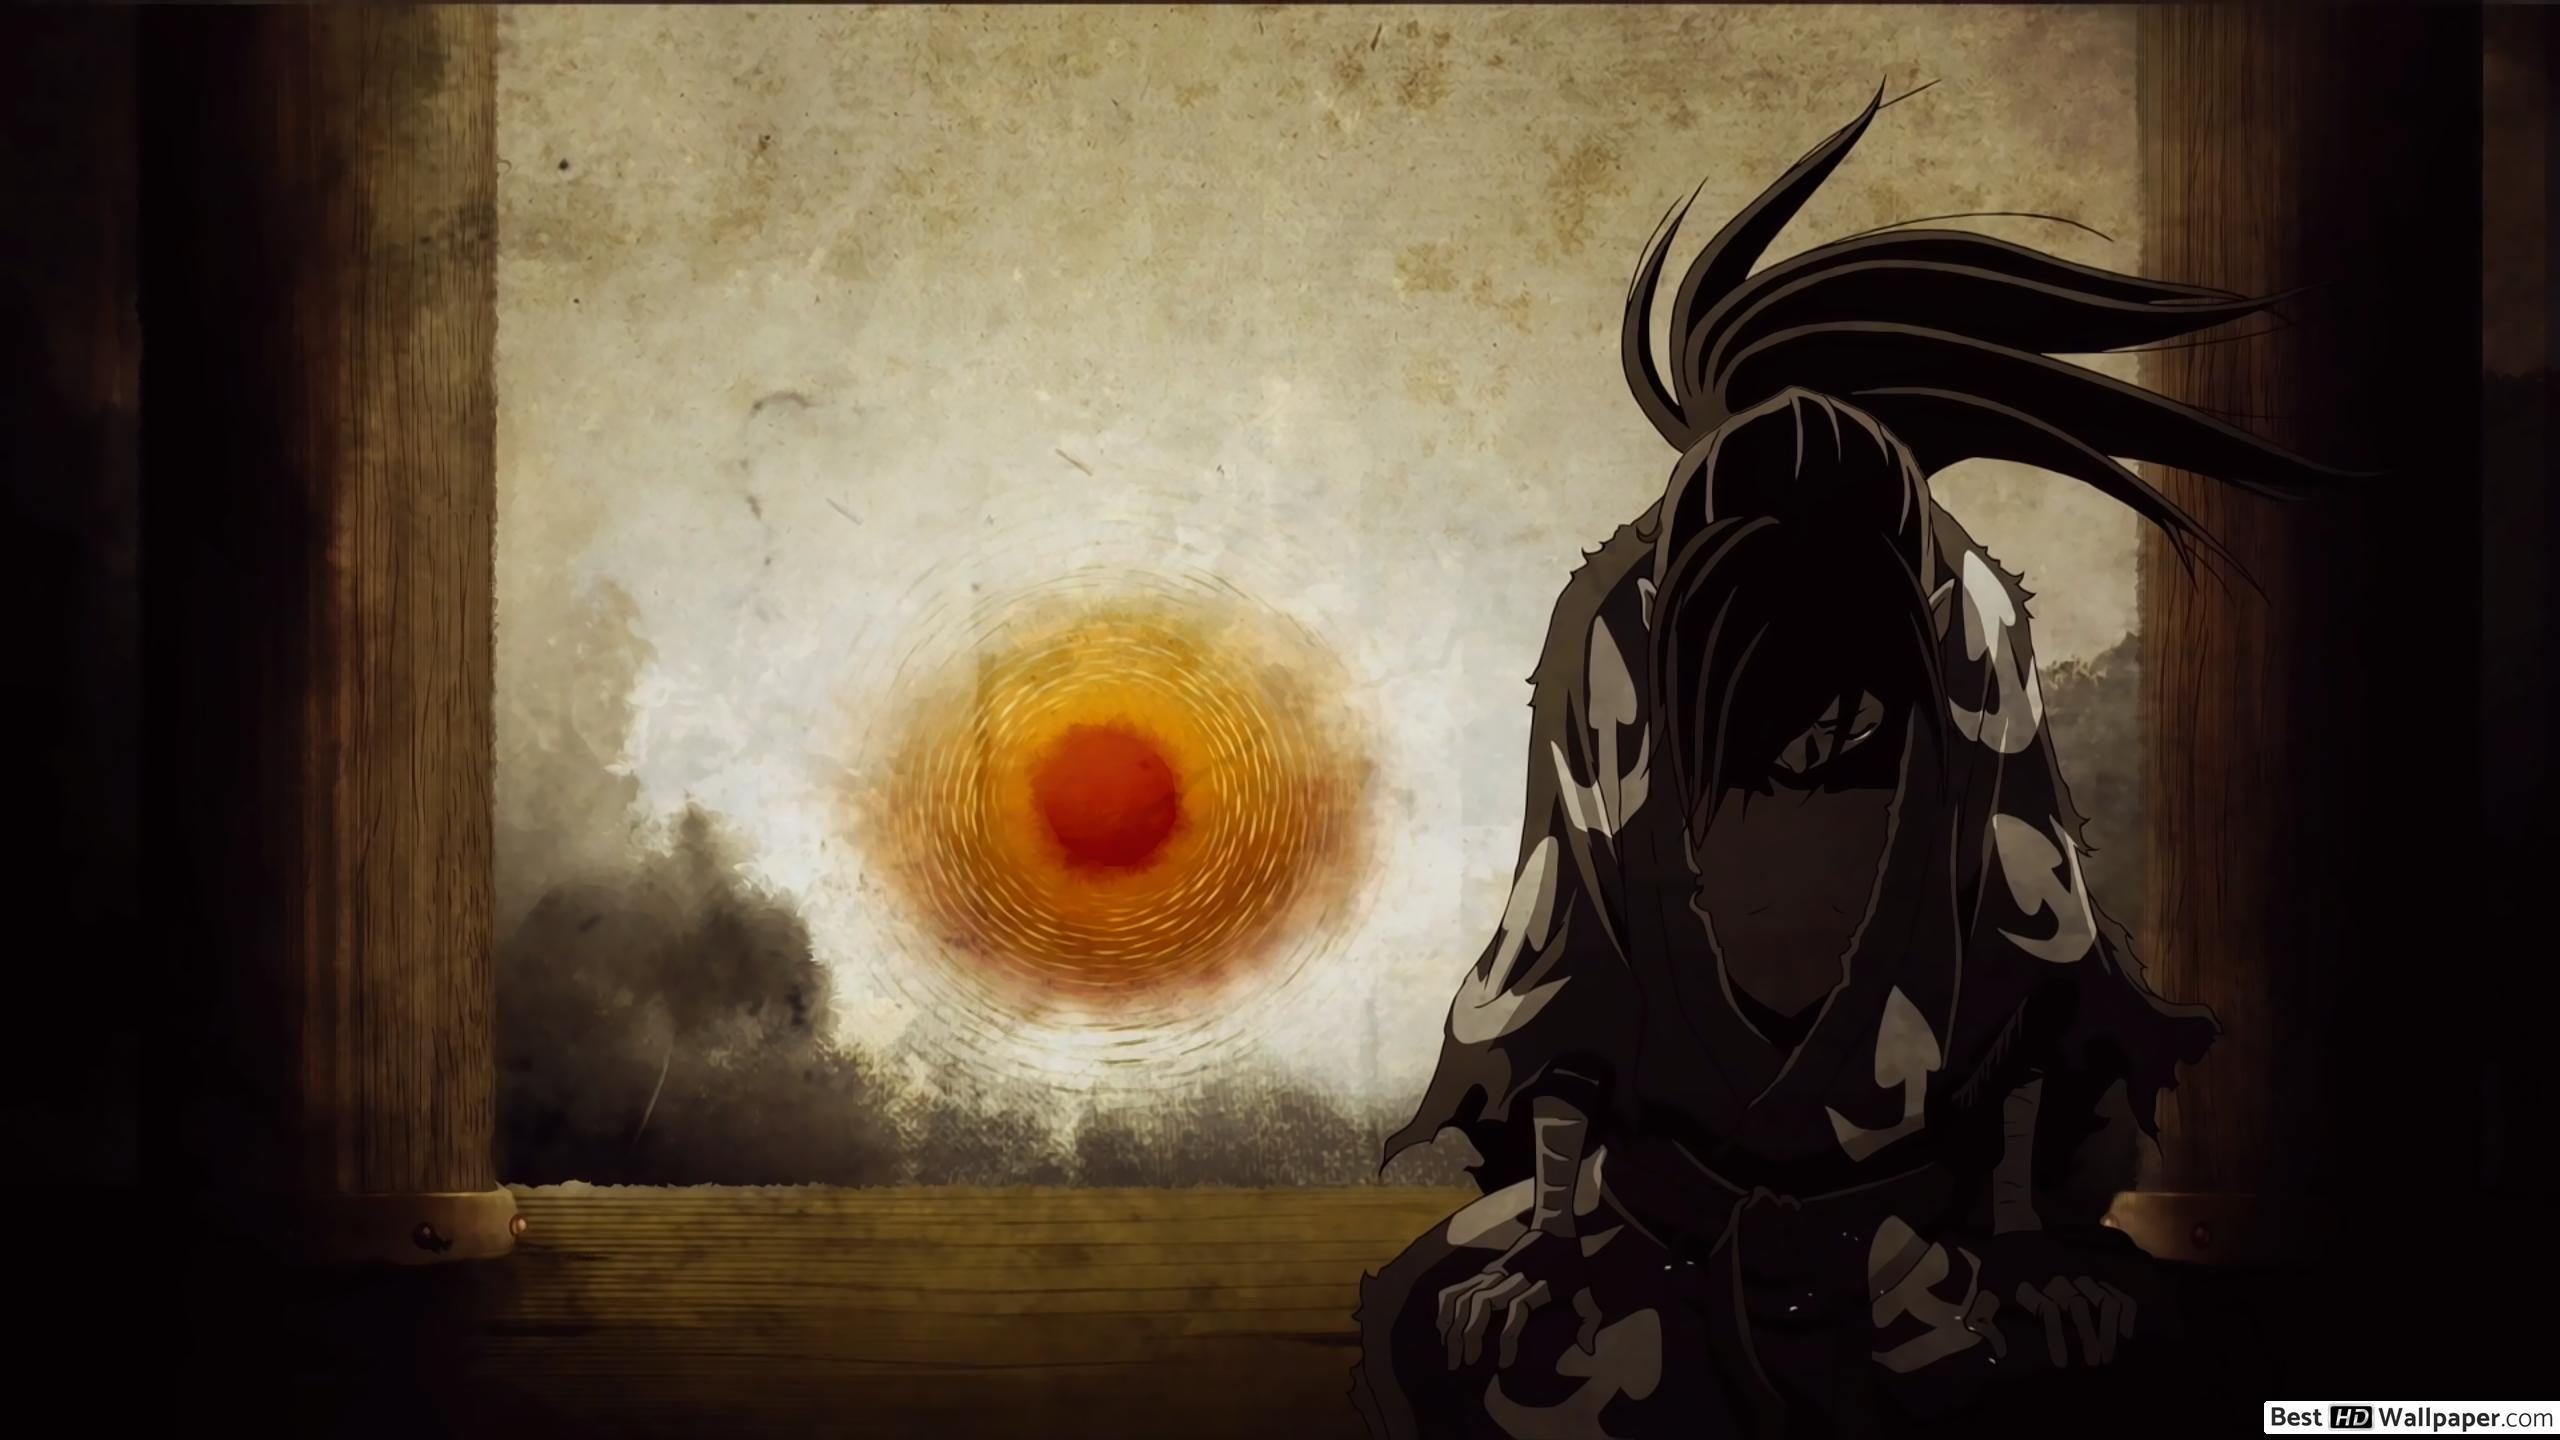 Dororo Anime - Hyakkimaru (Dr. Hyakki) HD wallpaper download